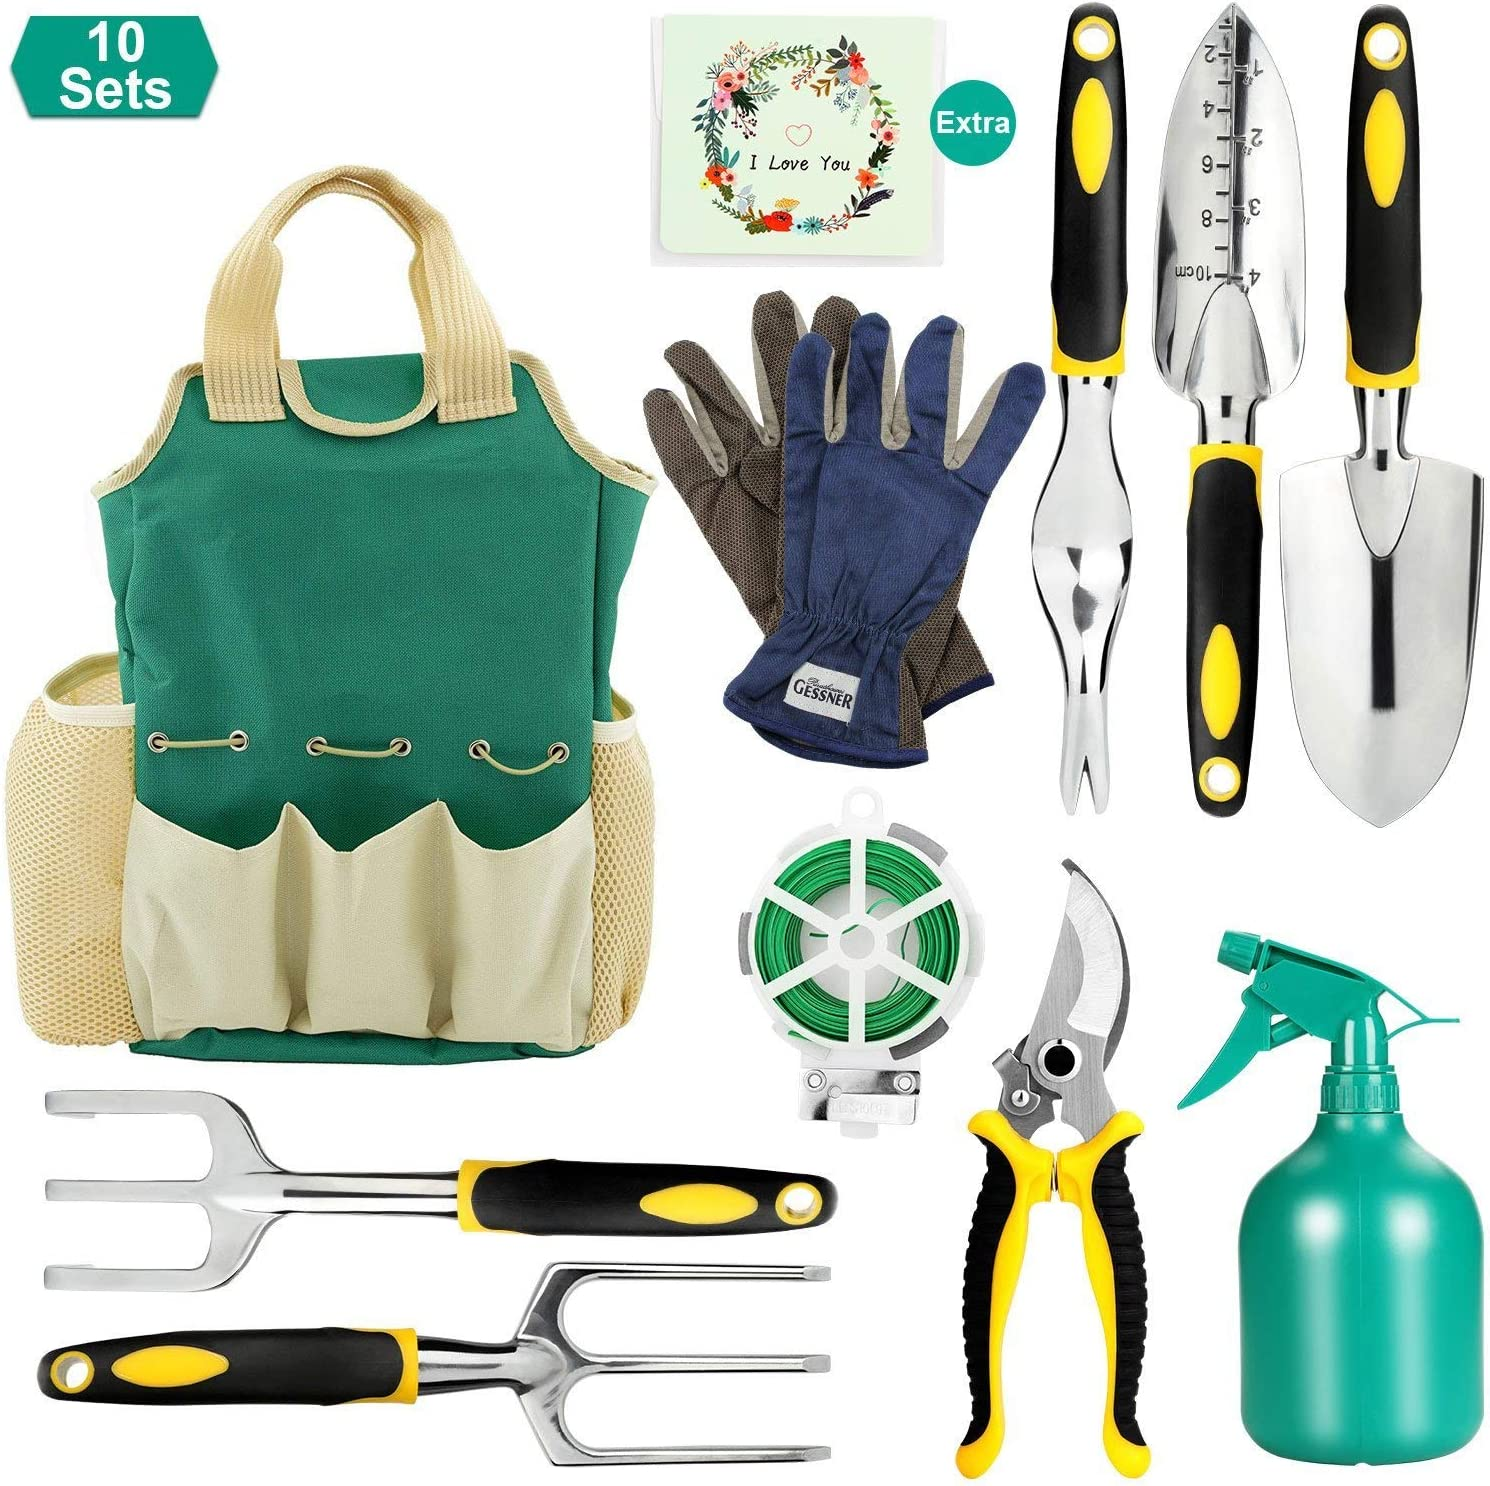 FITNATE Garden Tool Set, 10PCS Gardening Tools with Garden Storage Bag, Plant Rope, Soft Gloves, Watering Can, Garden Shear 5pcs Garden Planting Tools with Gift Card